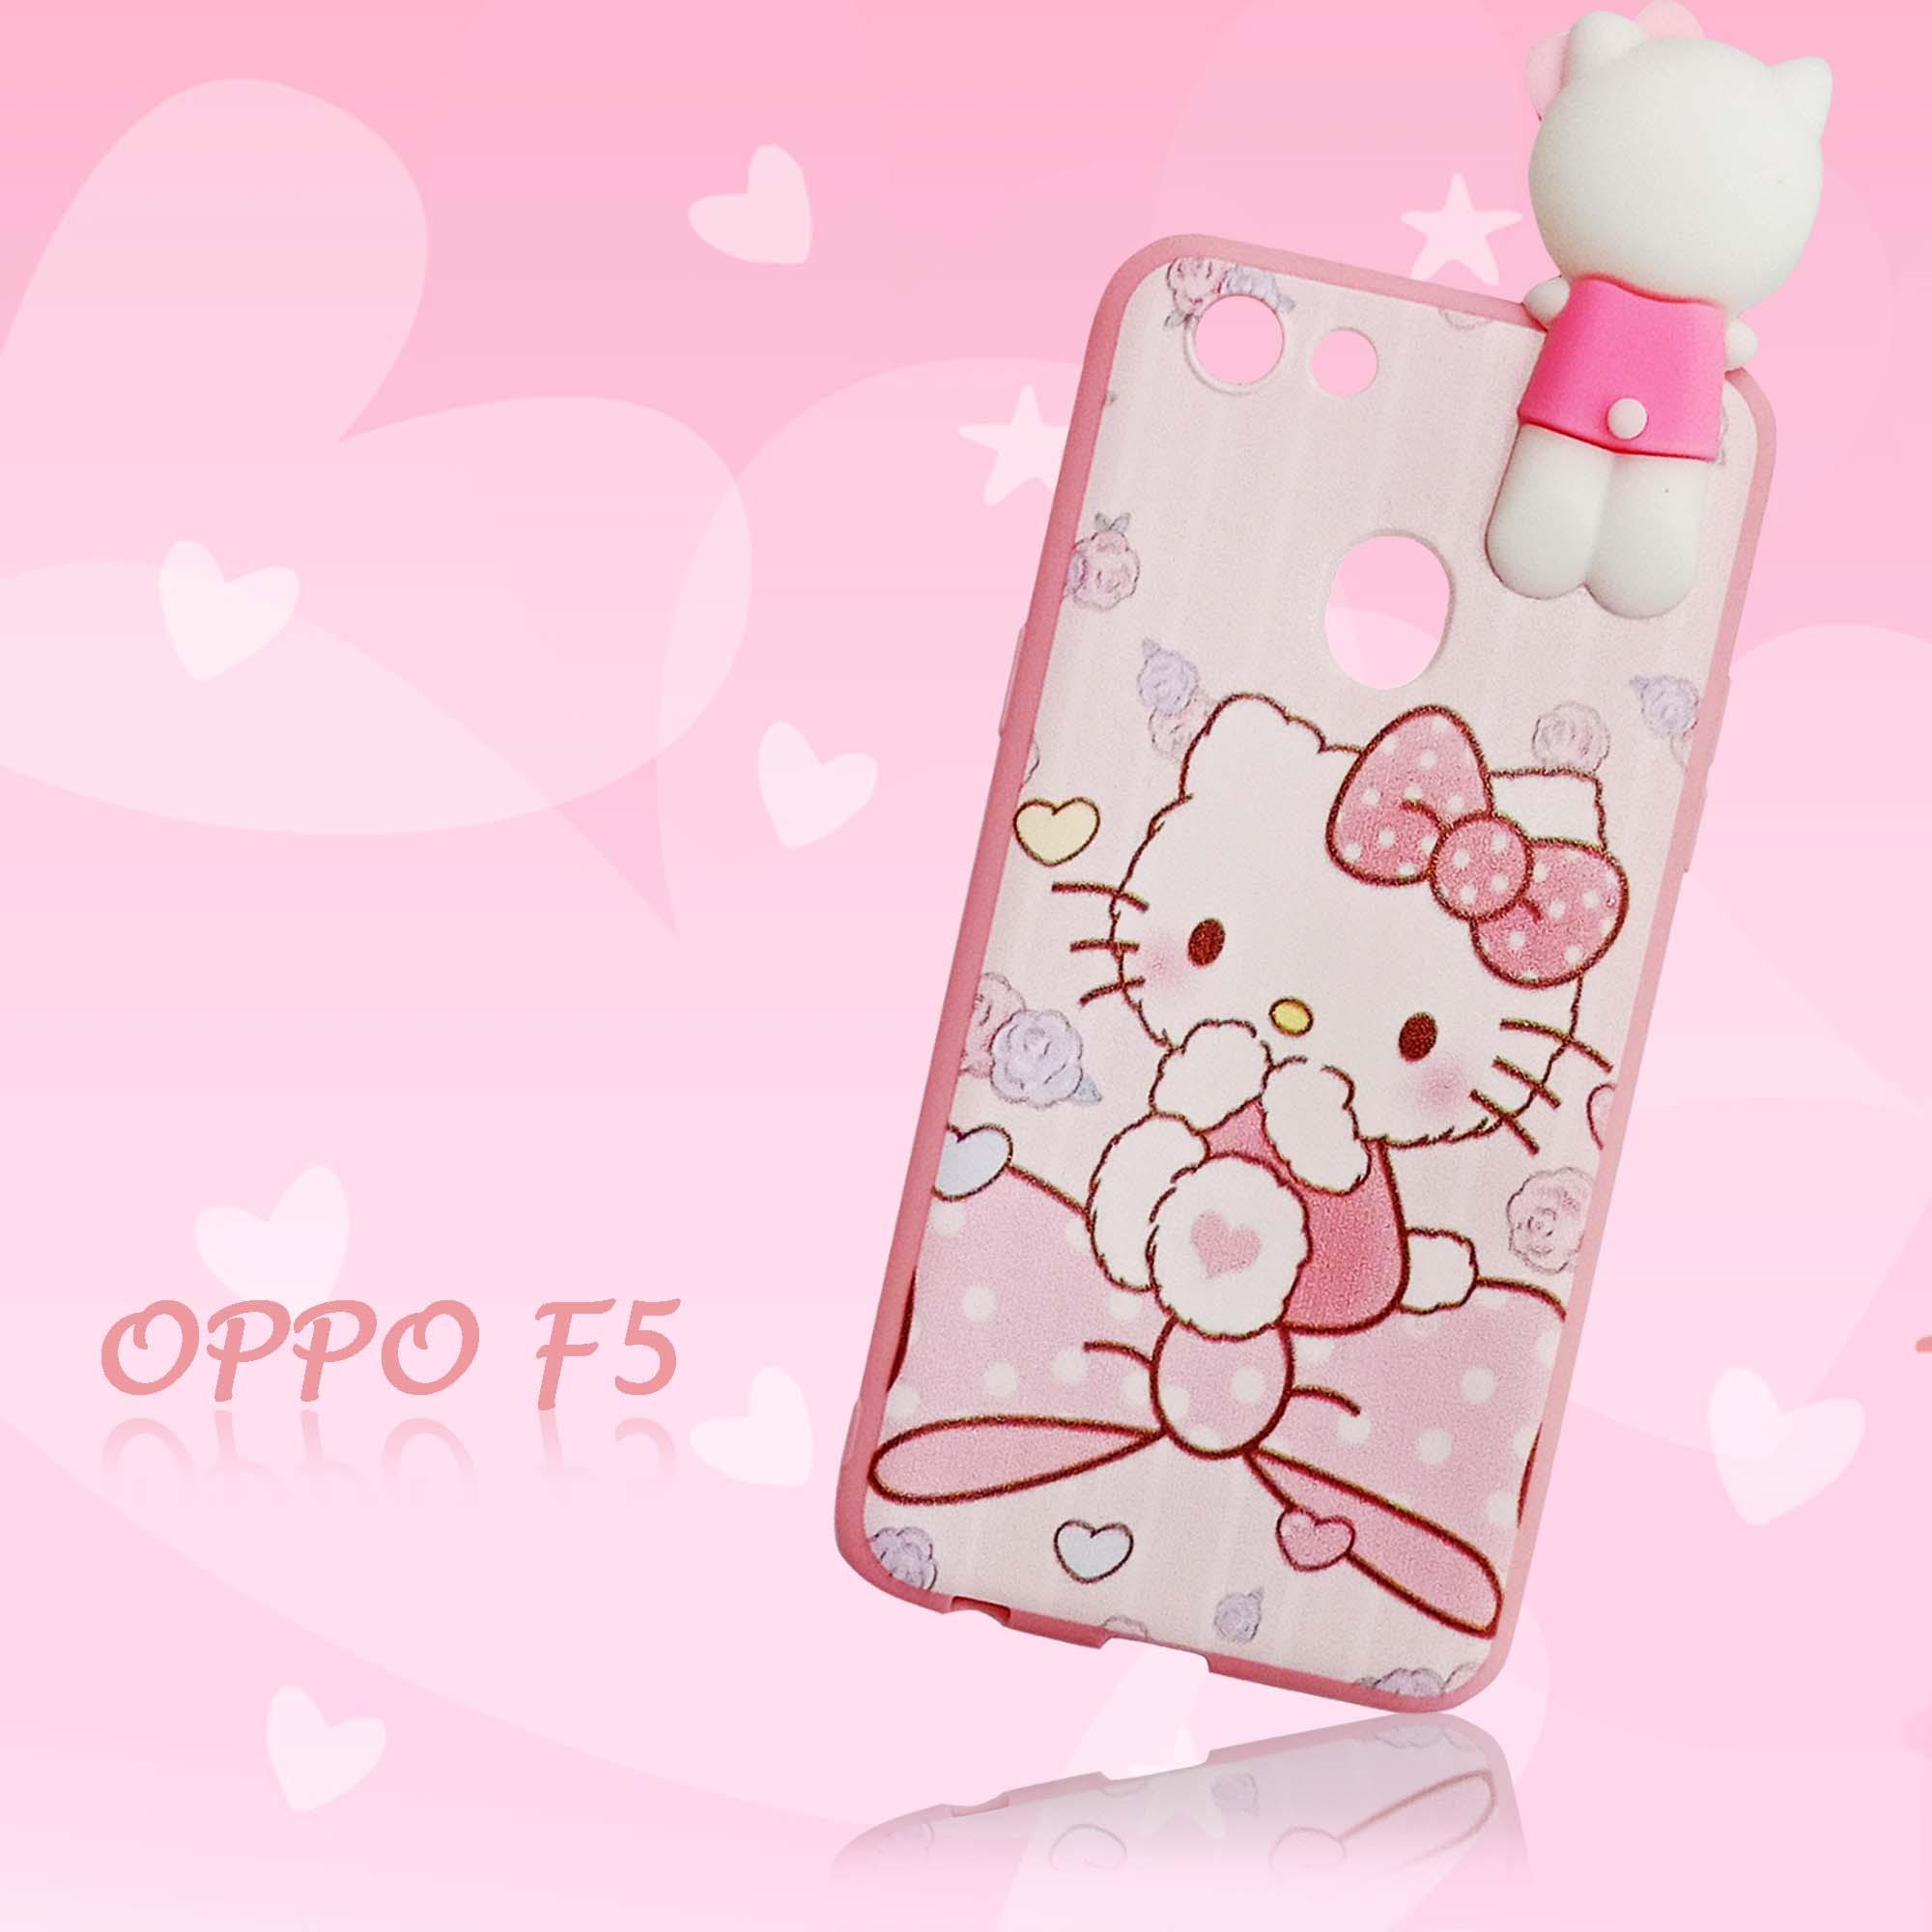 Marintri Case Oppo F5 Hello Kitty Cute